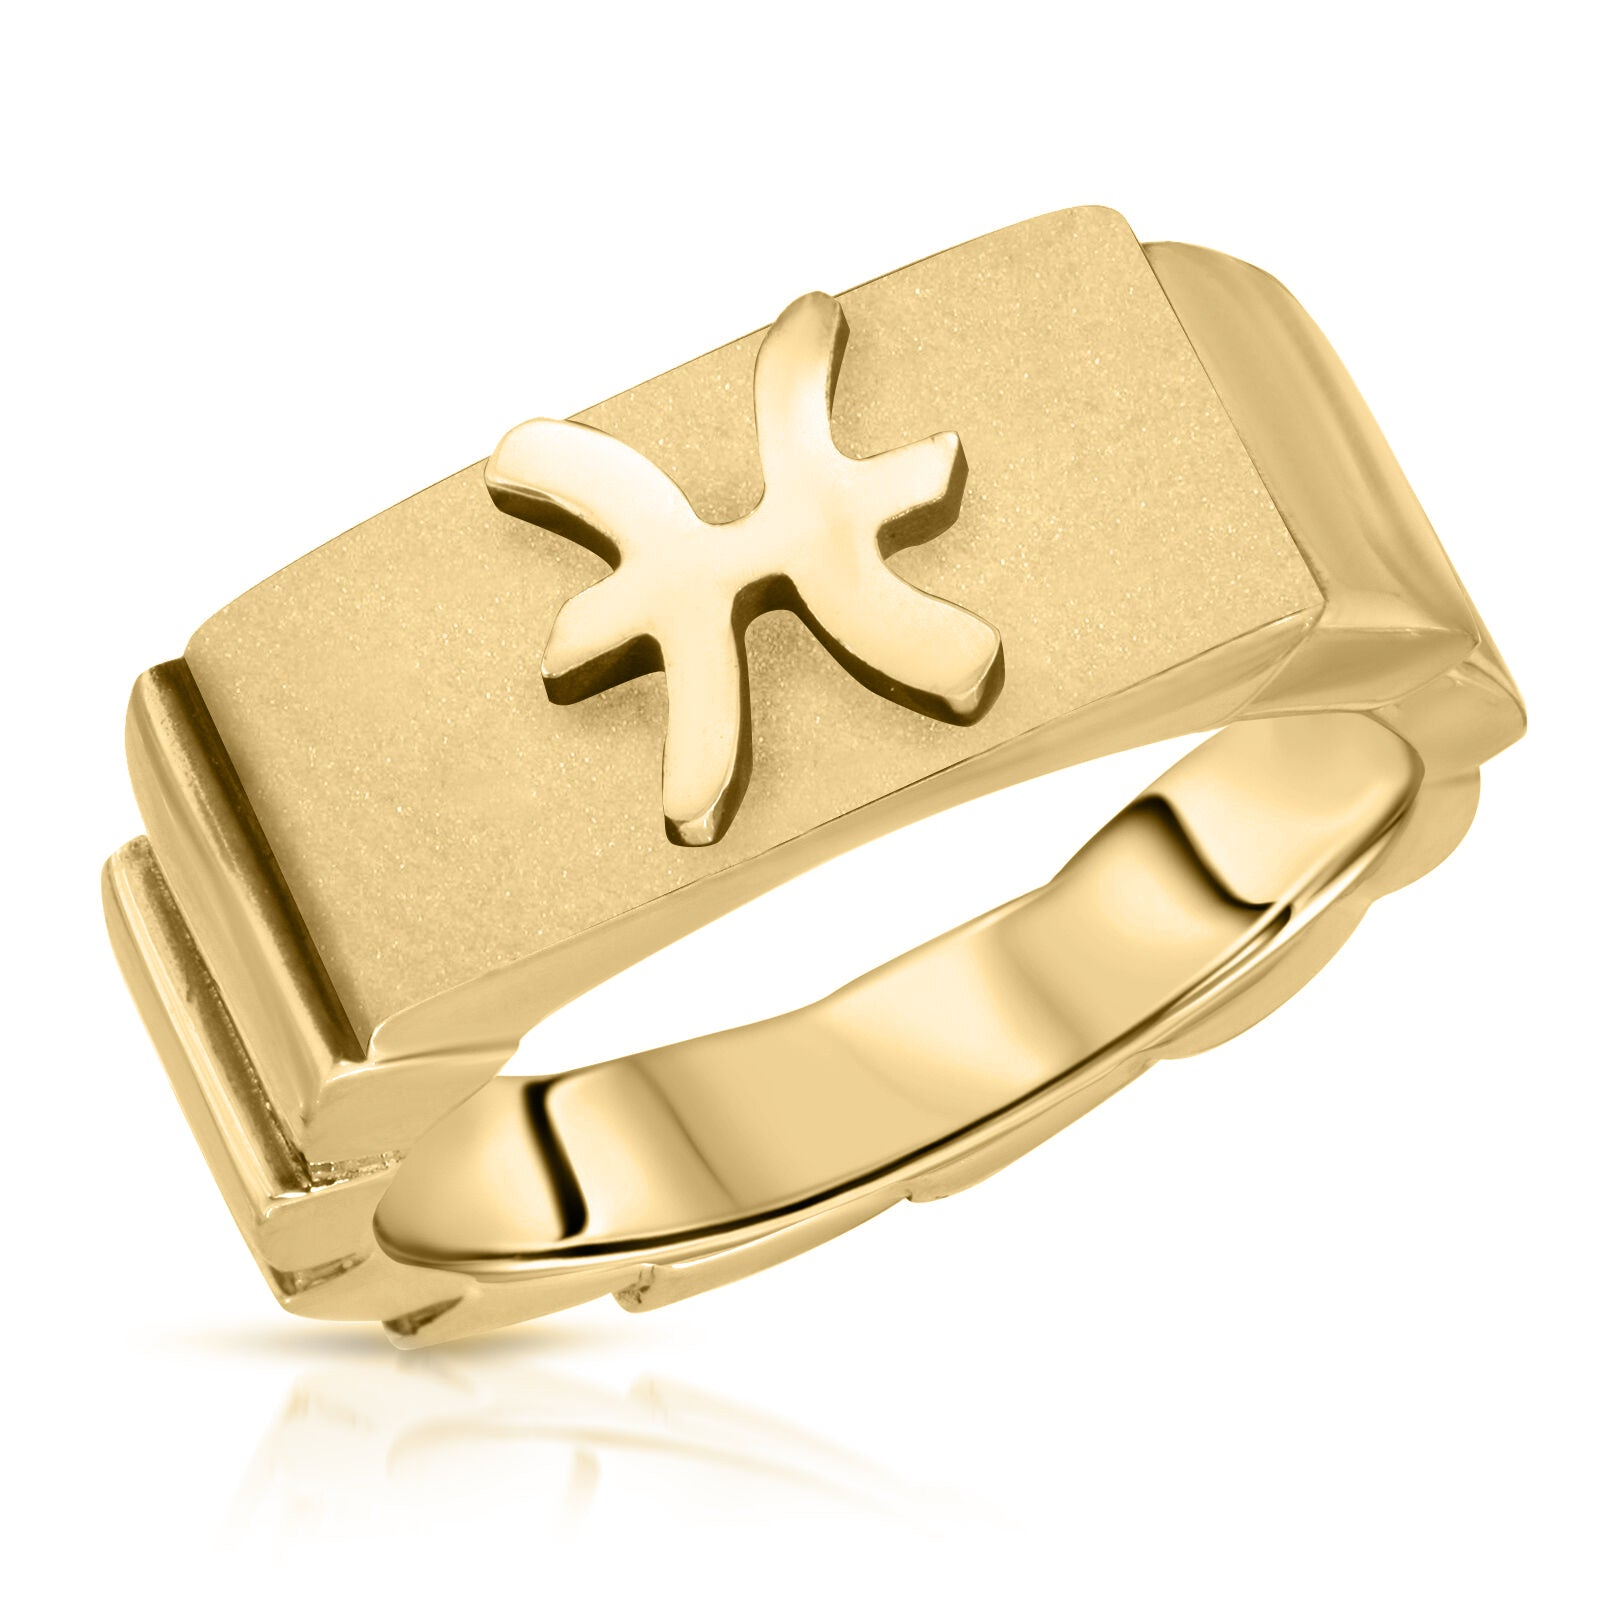 The W Brothers Premium Grade A 925 Sterling Silver Pisces Horoscope Zodiac Ring, perfect for a fashionable statement for men and women's jewelry accessory. Available in silver, gold, rose gold at www.thewbros.com.